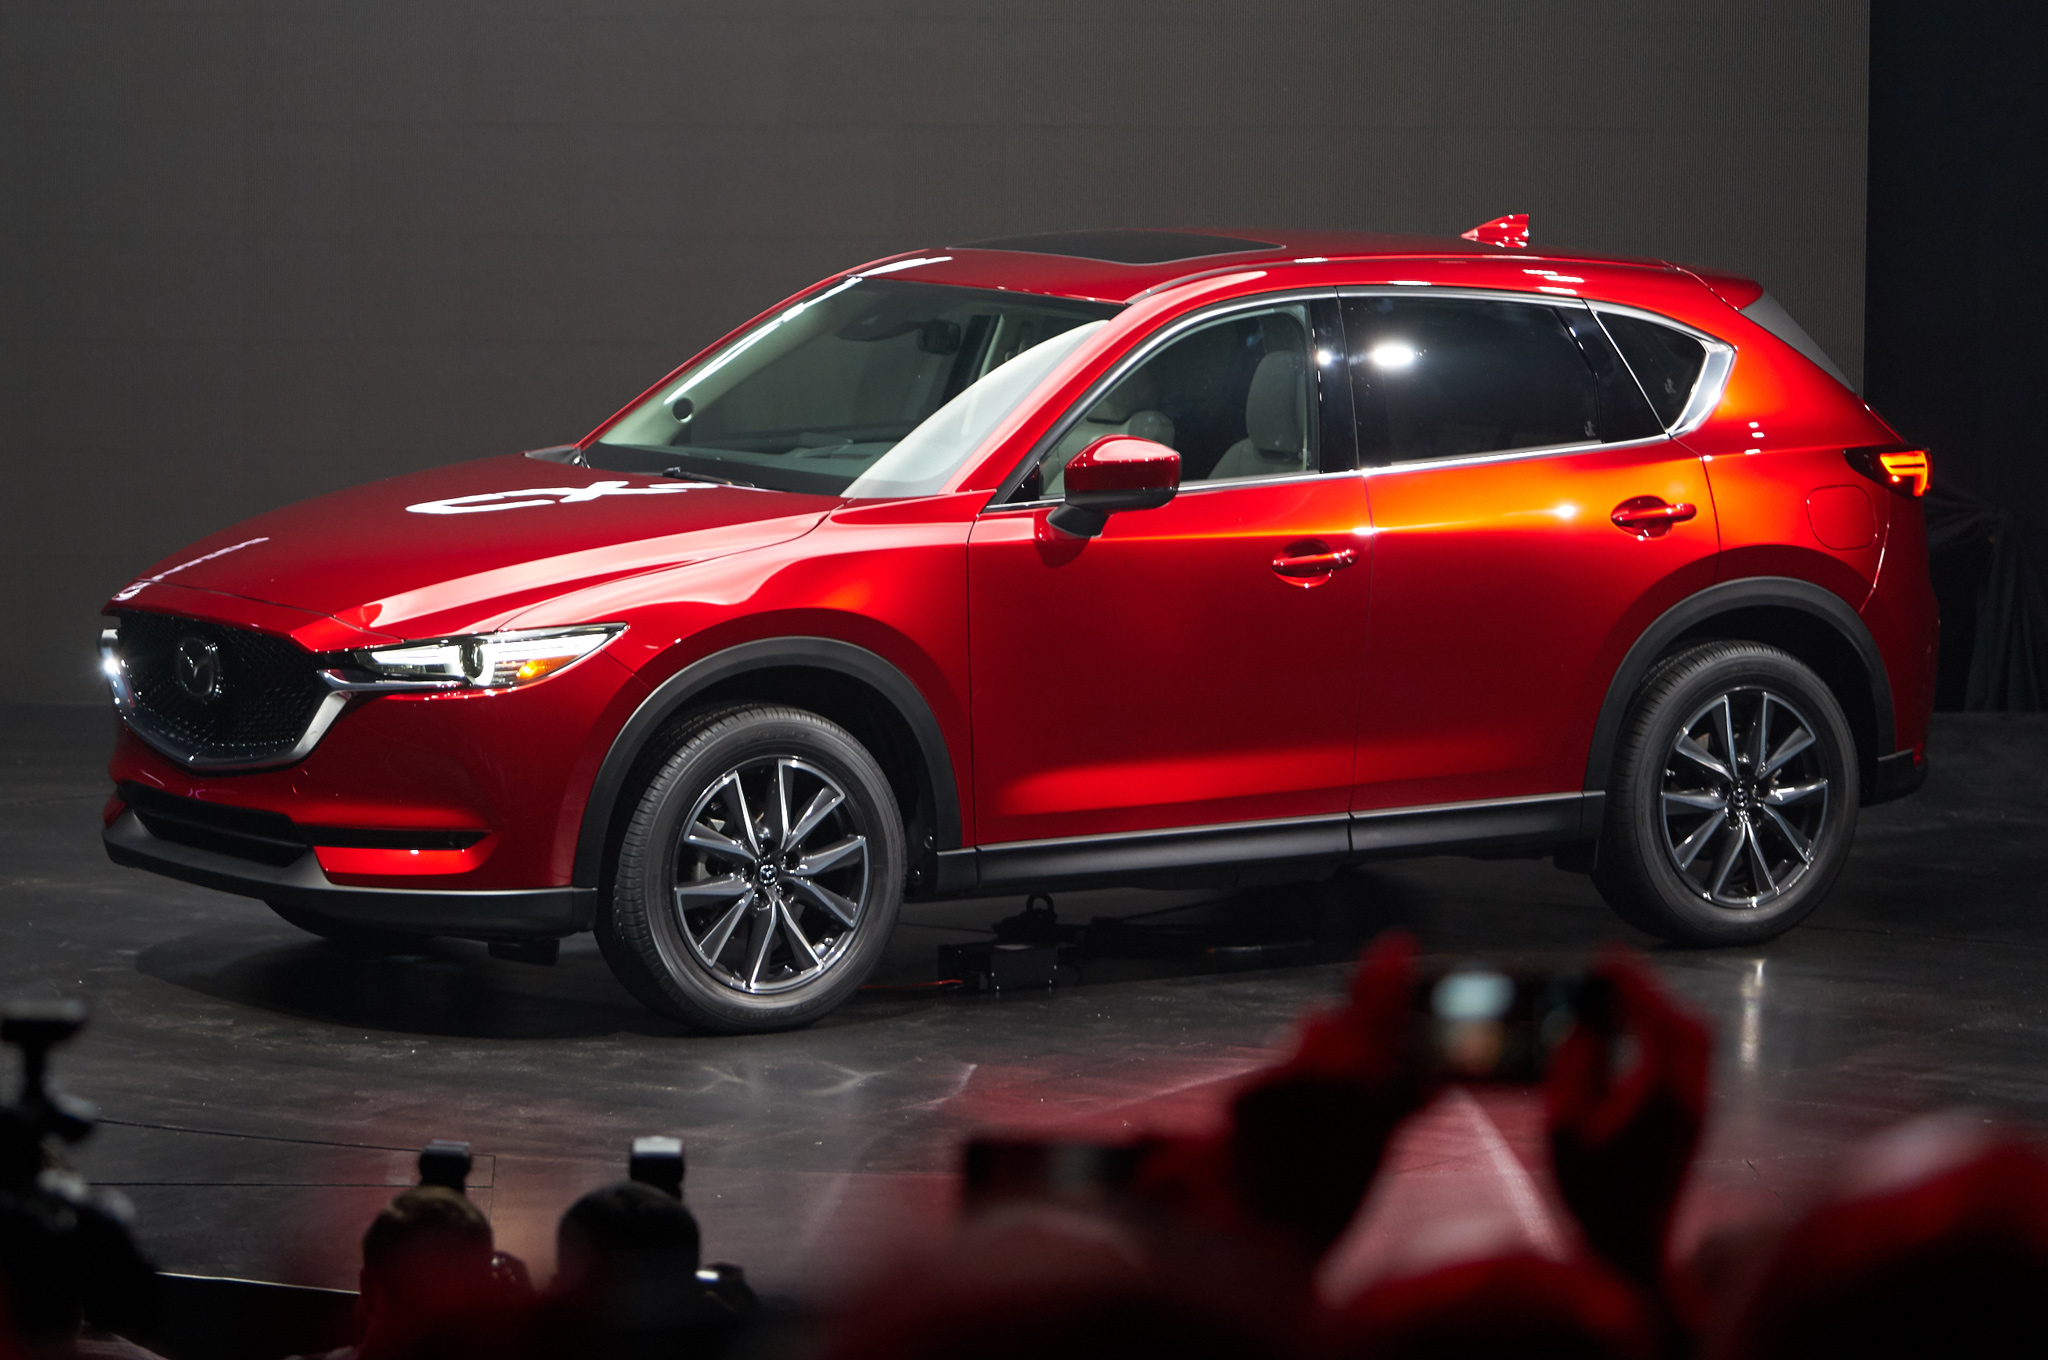 2017-mazda-cx-5-front-three-quarter-view-on-stage